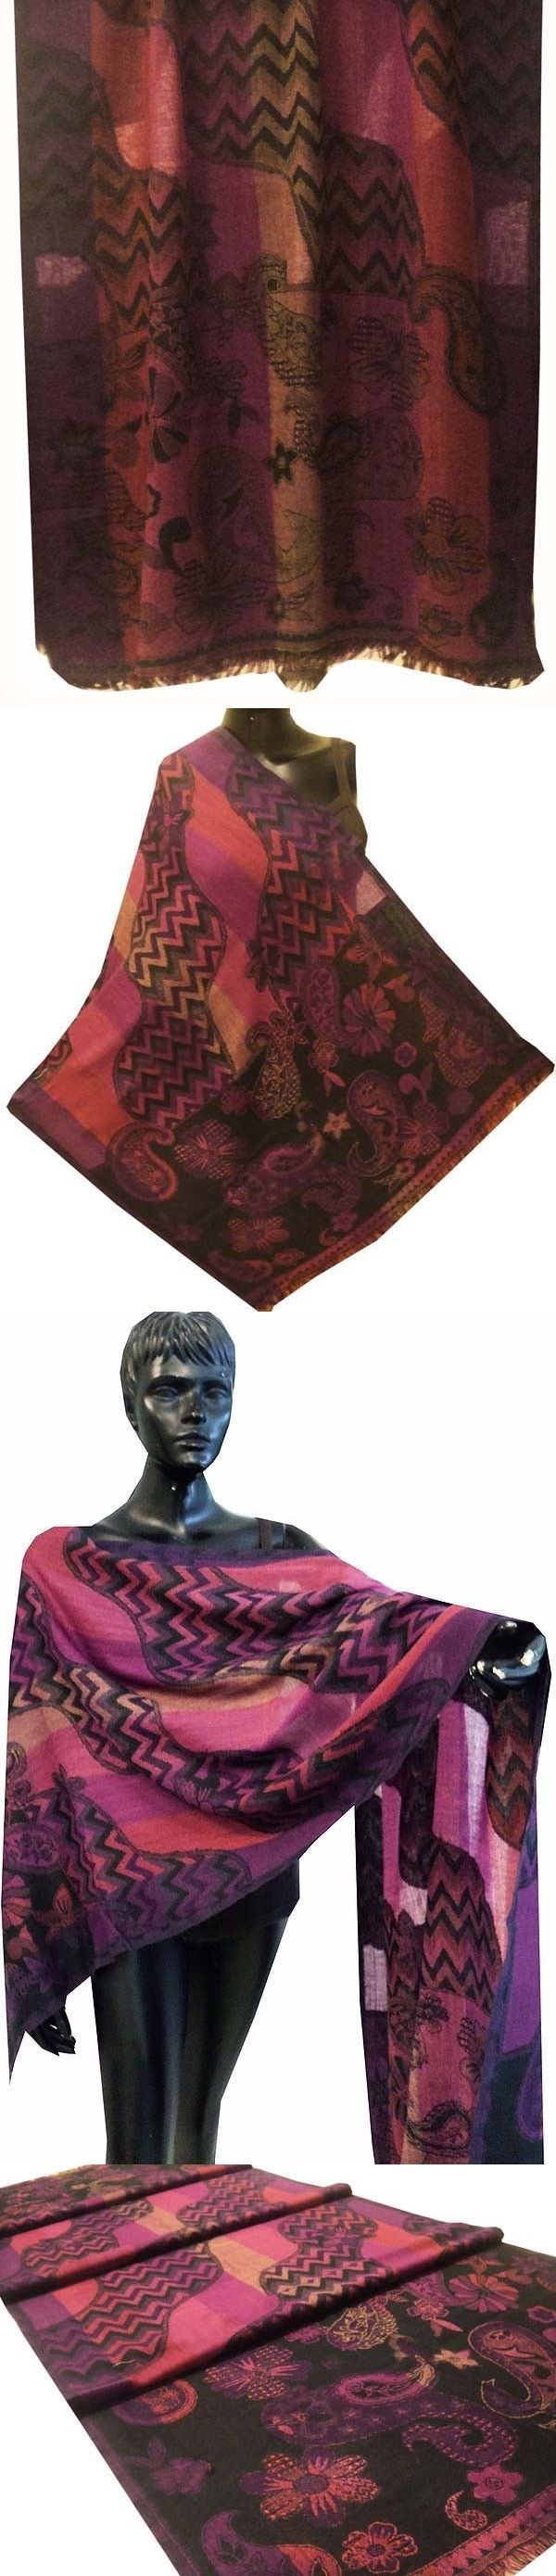 Scarves and Wraps 57927: Exquisite Wool Kashmir Jamawar Pashmina Cashmere Shawl Wrap Throw Scarf Indian -> BUY IT NOW ONLY: $30.99 on eBay!